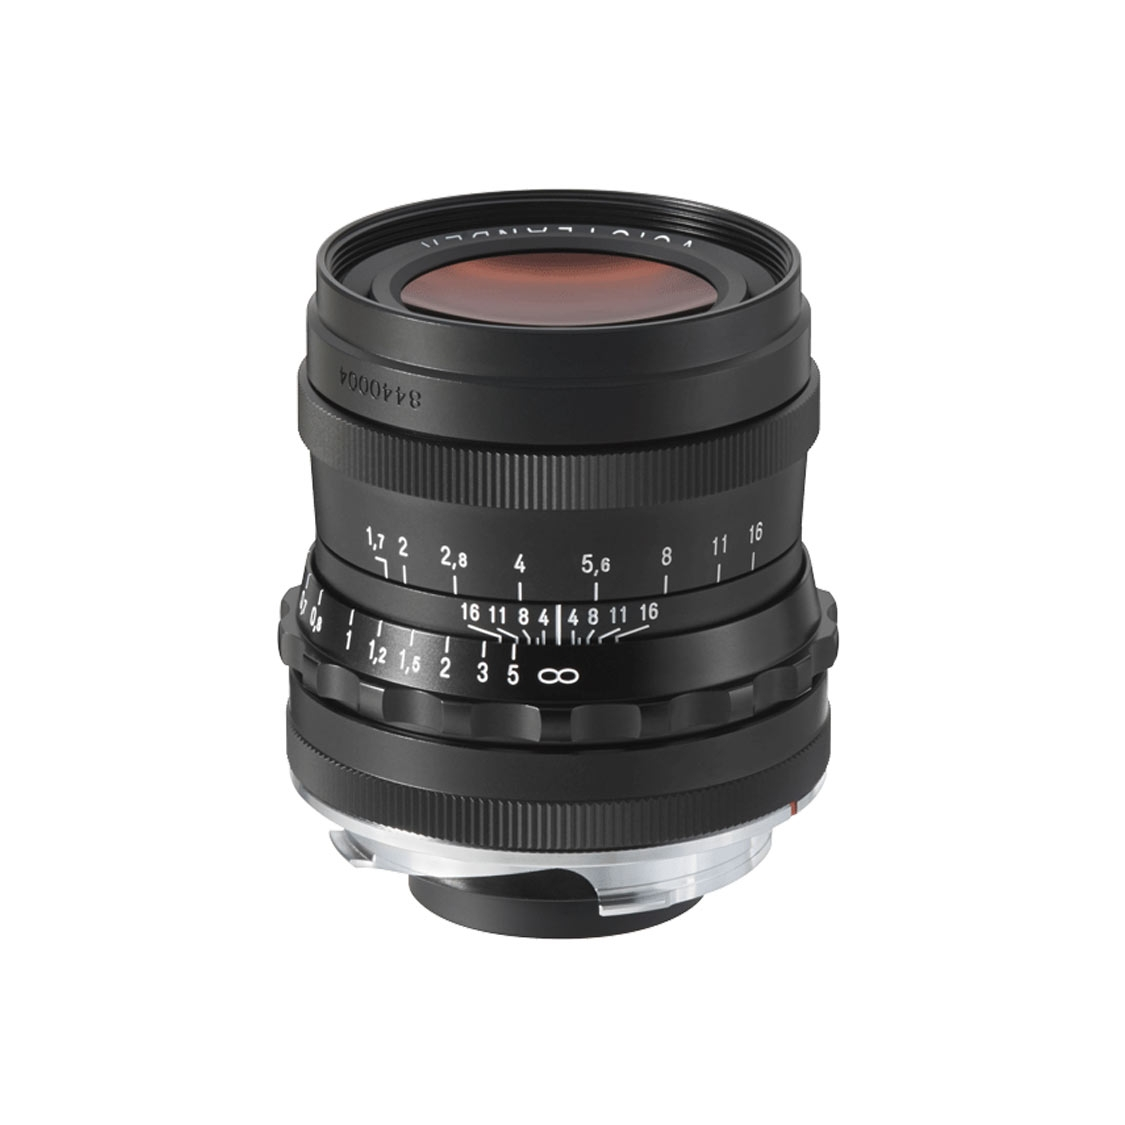 Voigtlander 35mm F1.7 Ultron Lens (black)